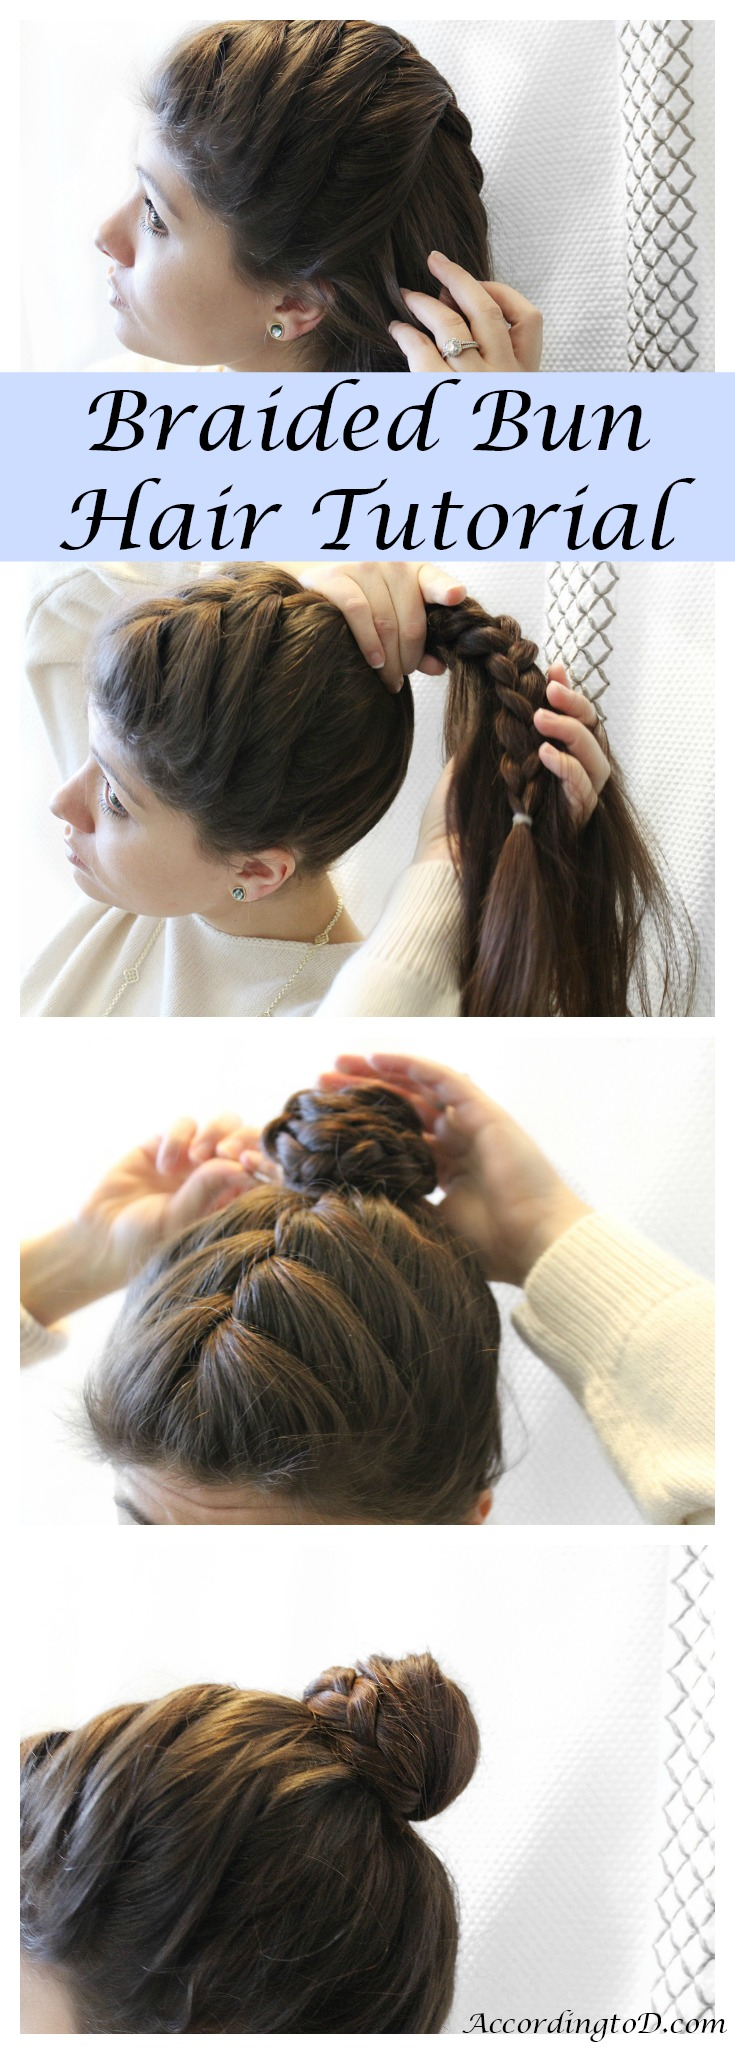 Braided-bun-hair-tutorial-pinterest.jpg